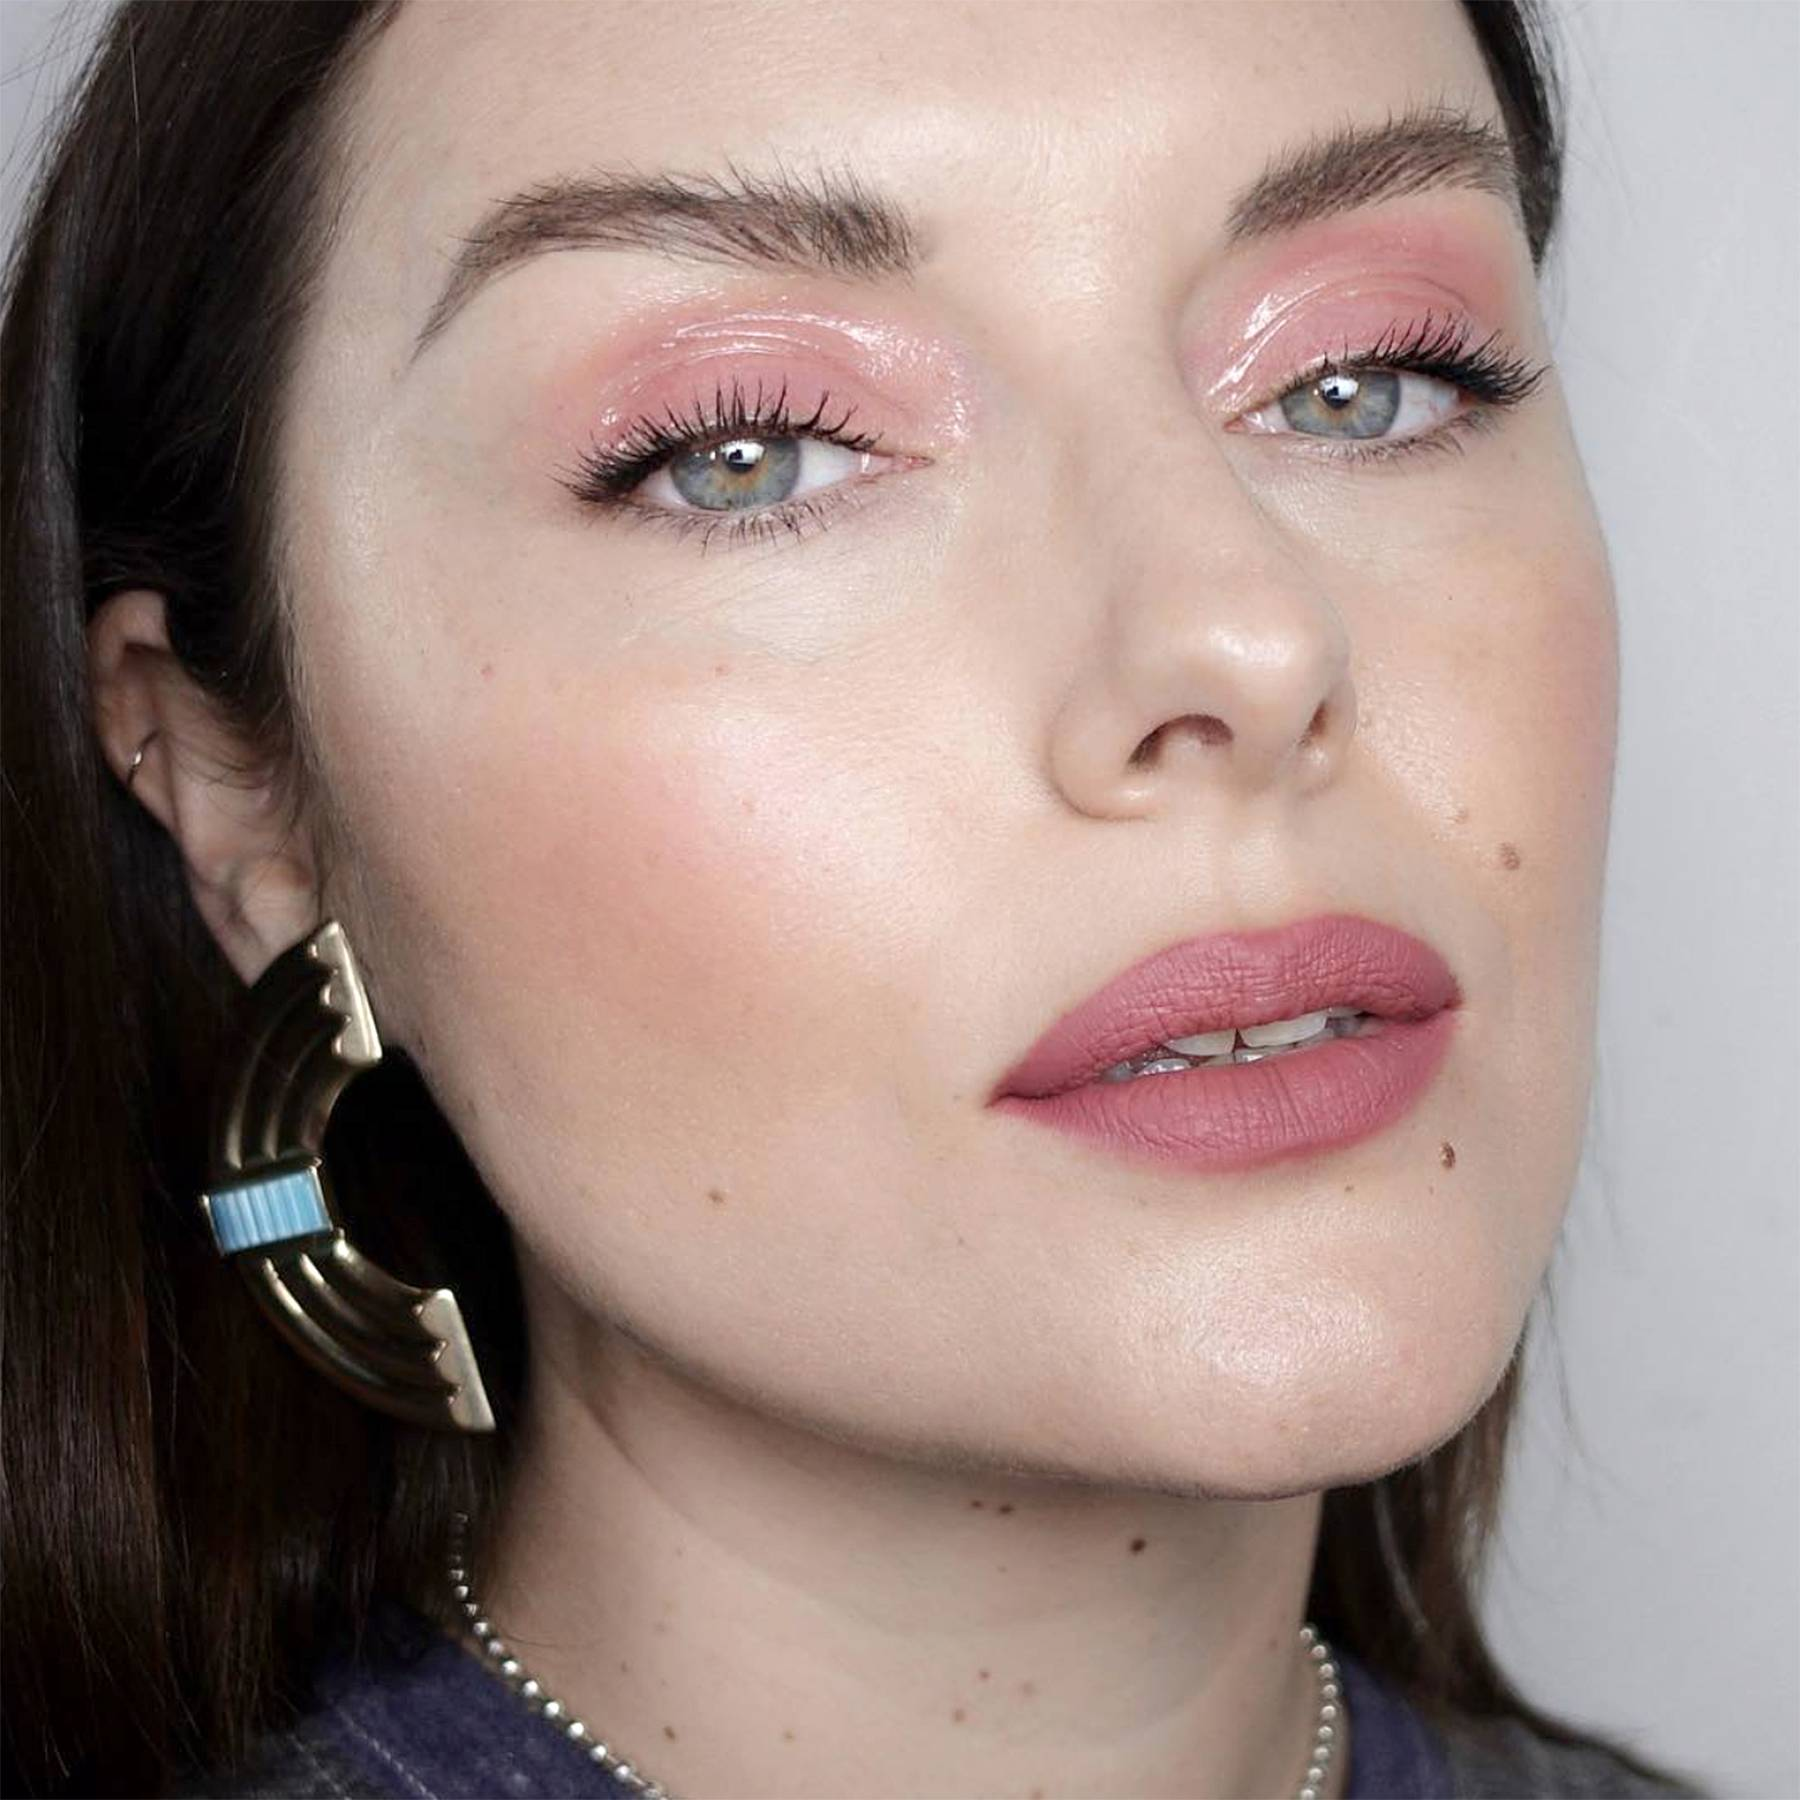 makeup-style-what-to-wear-valentines-day-dinner-holiday-ideas-winter-soft-pink-eyeshadow-monochromatic-rose.jpg